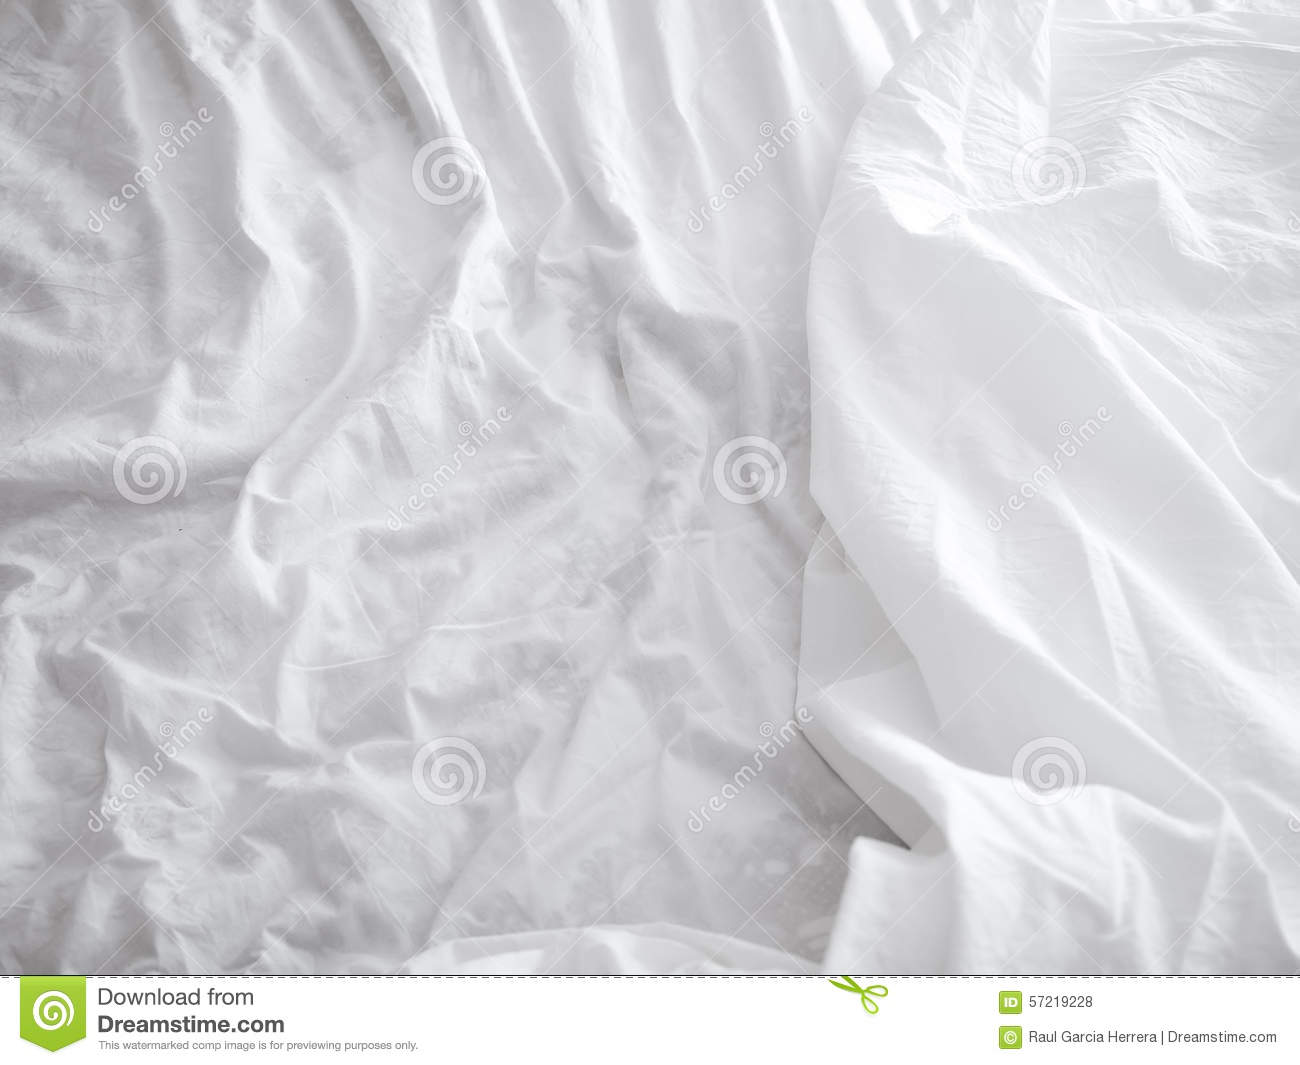 Black and white bed sheets texture - White Bed Sheets Background And Texture